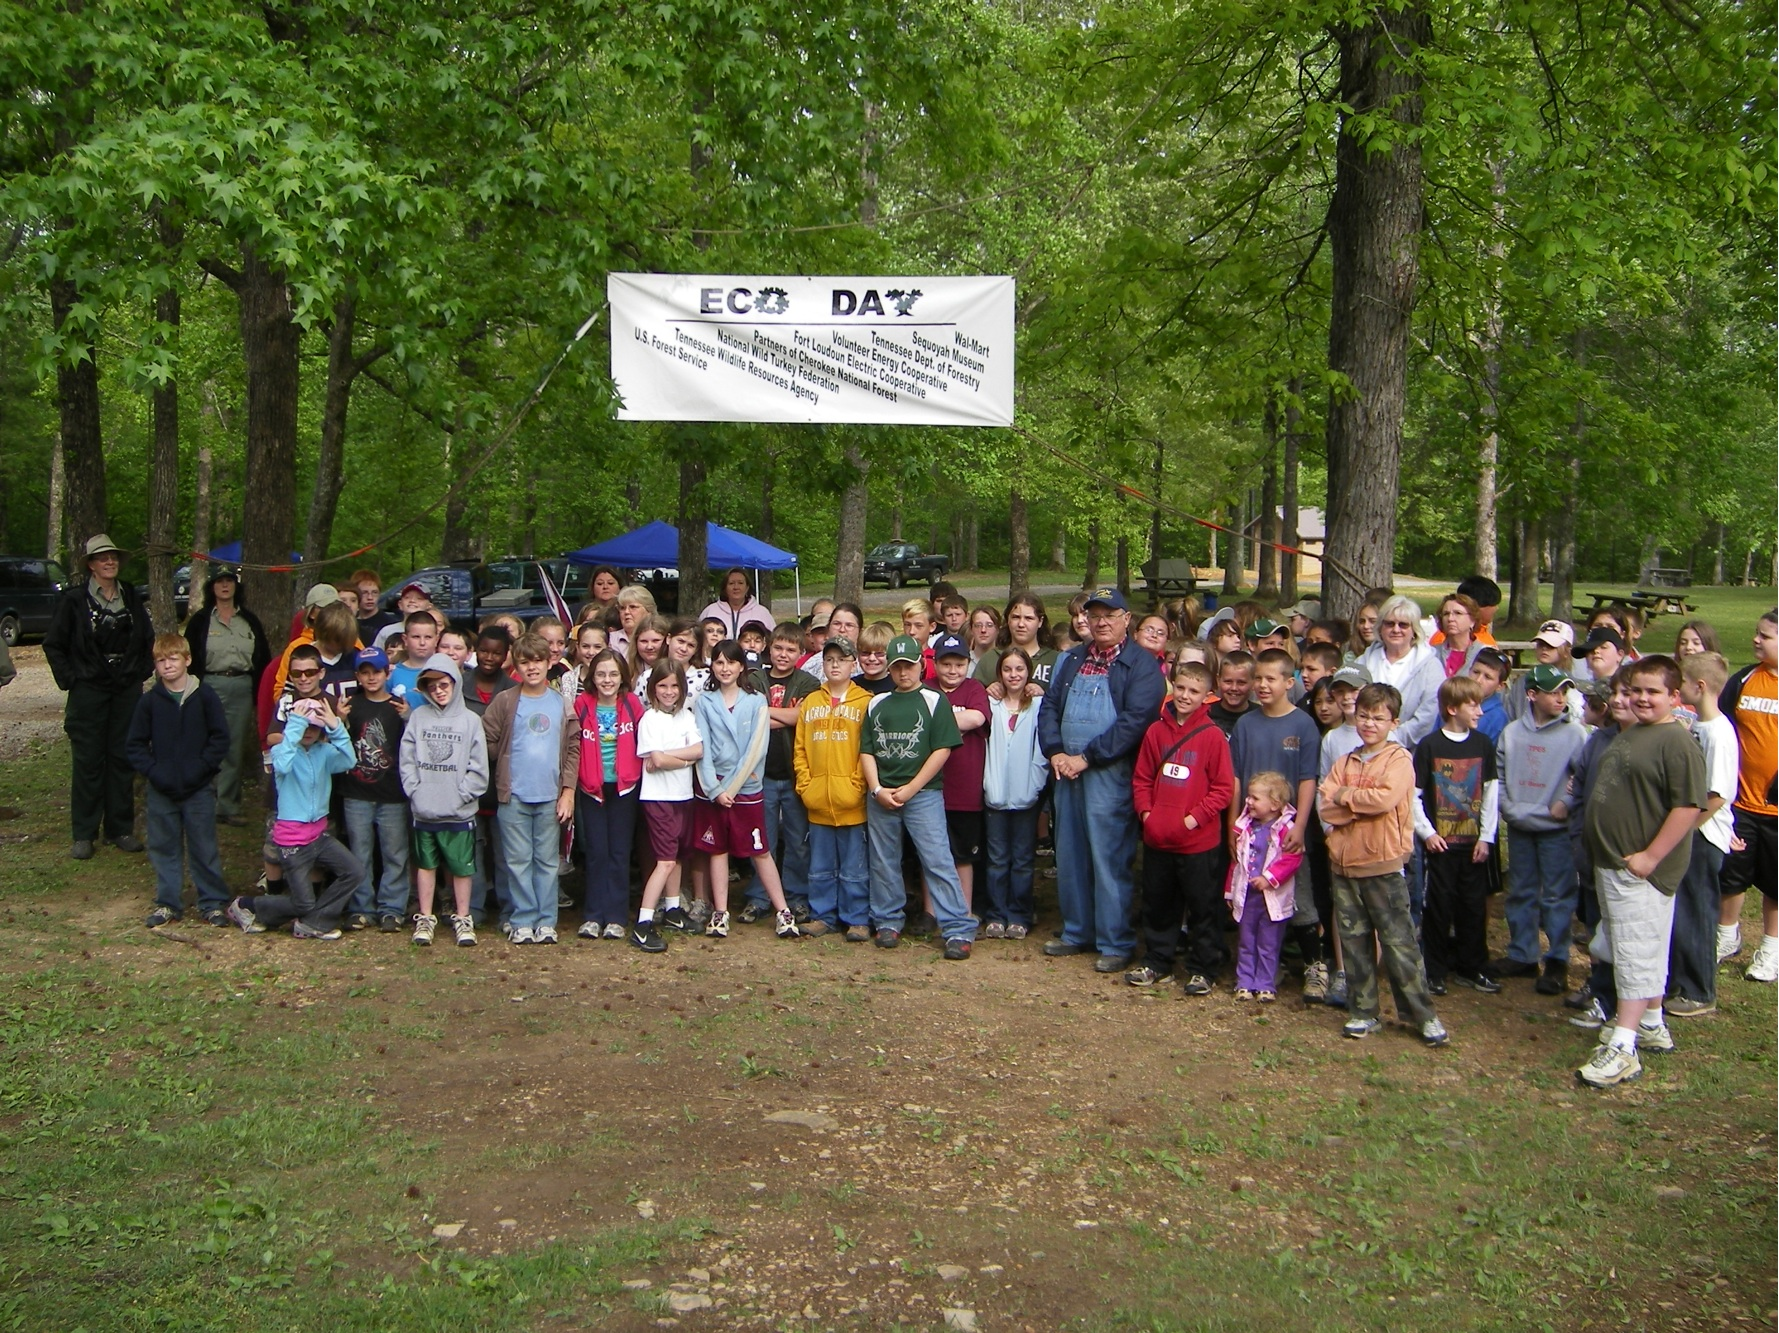 Eco Days - A continuing project to help children discover the forest